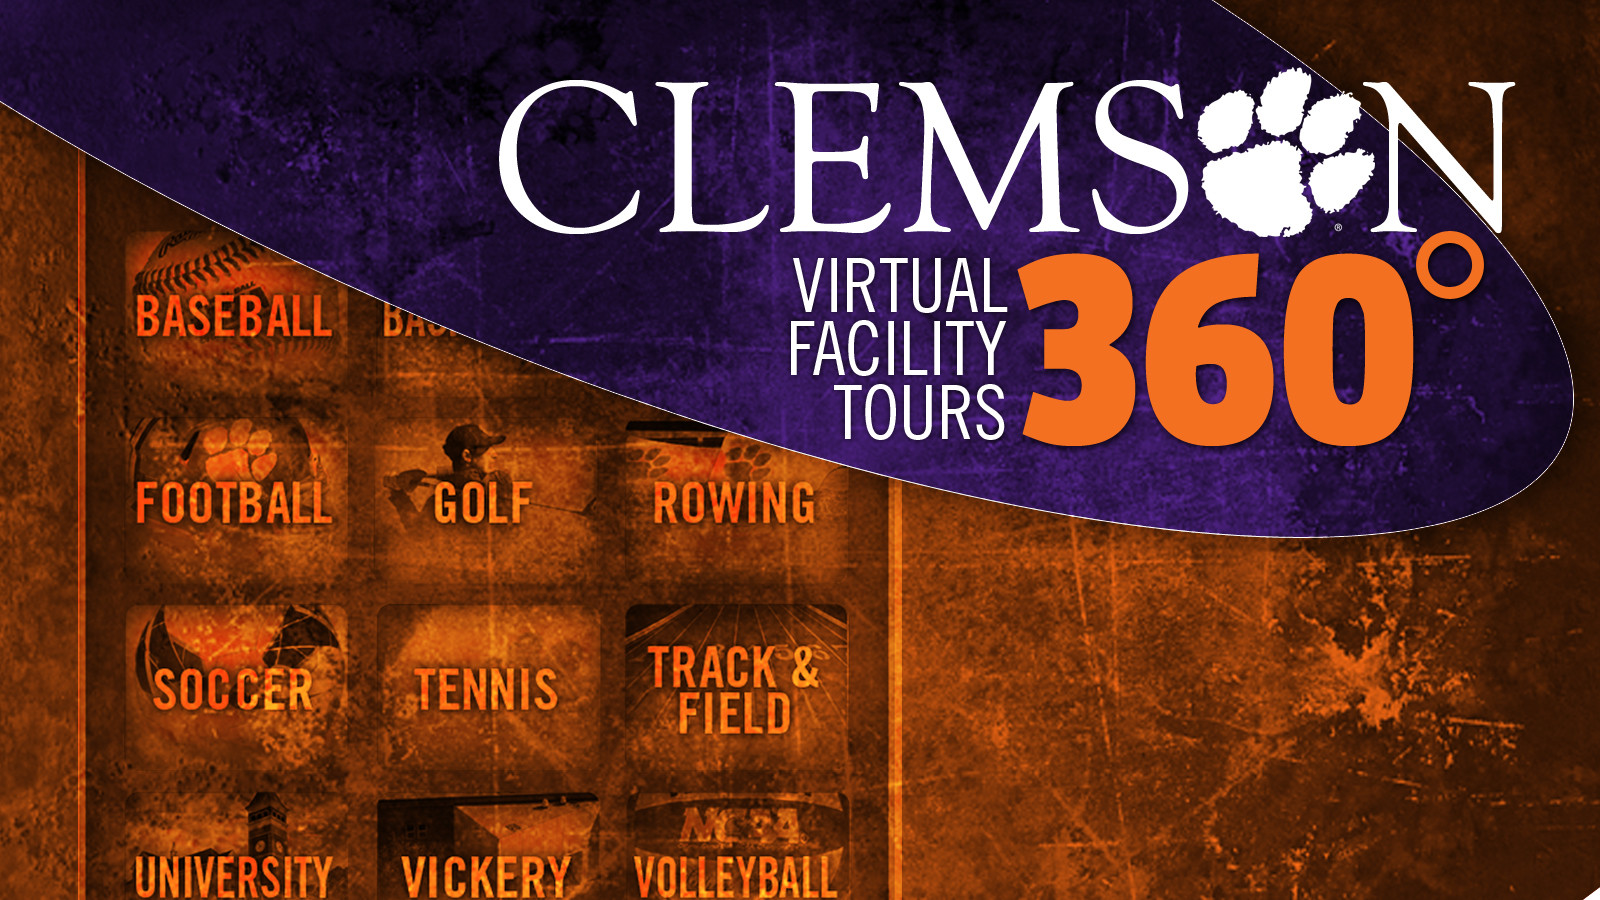 Clemson360 Virtual Tours Now Available on Mobile Devices